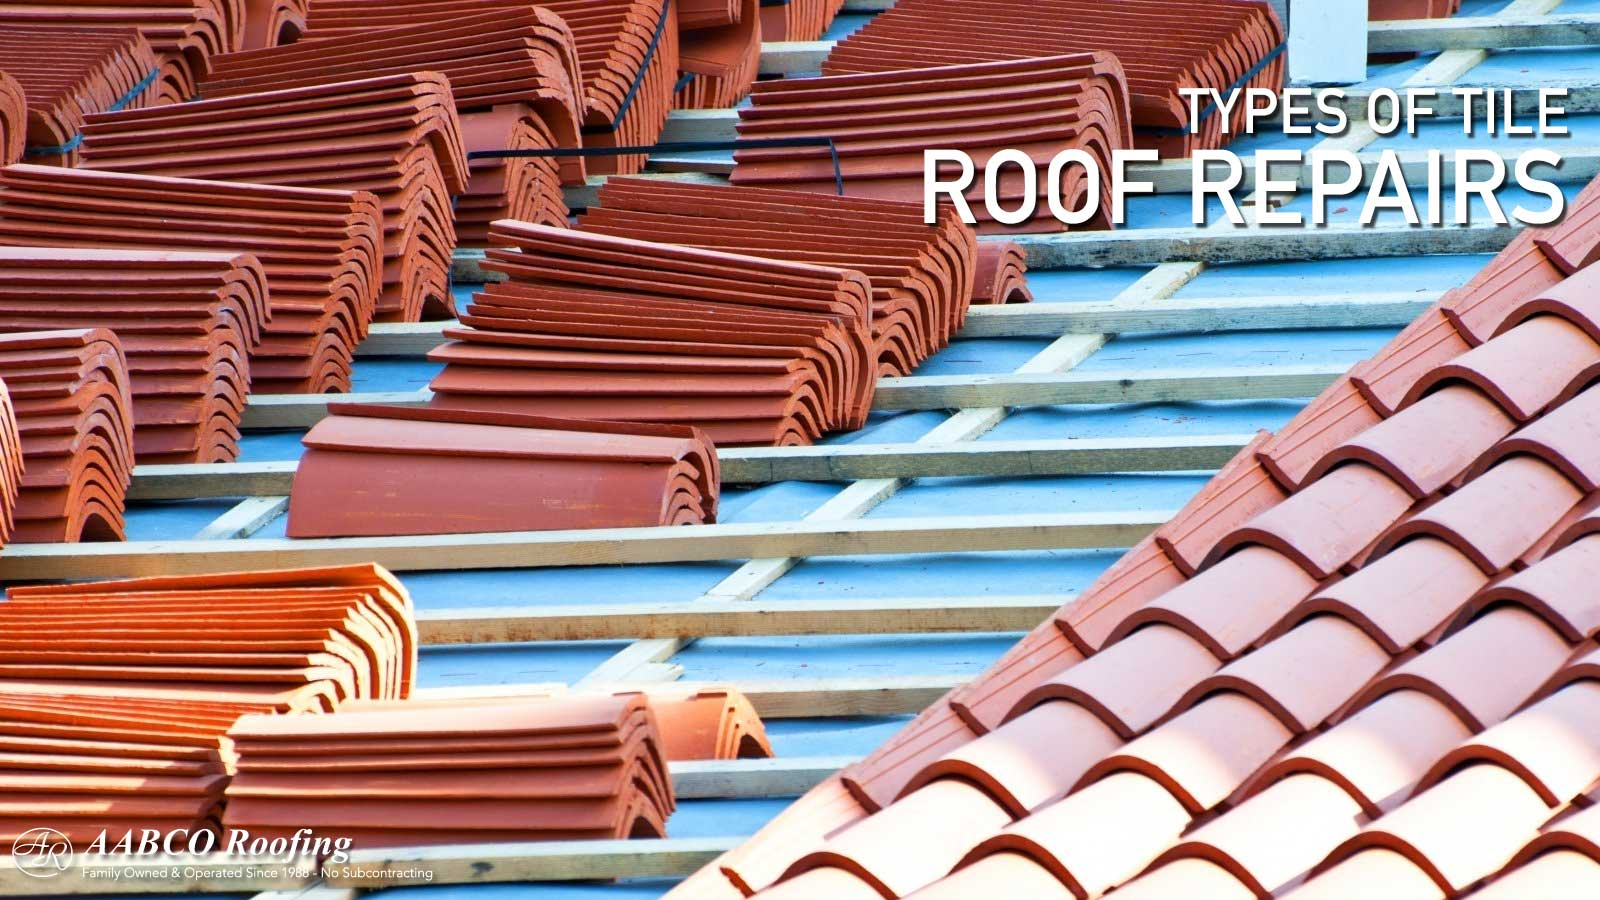 a tile roof repair guide for different